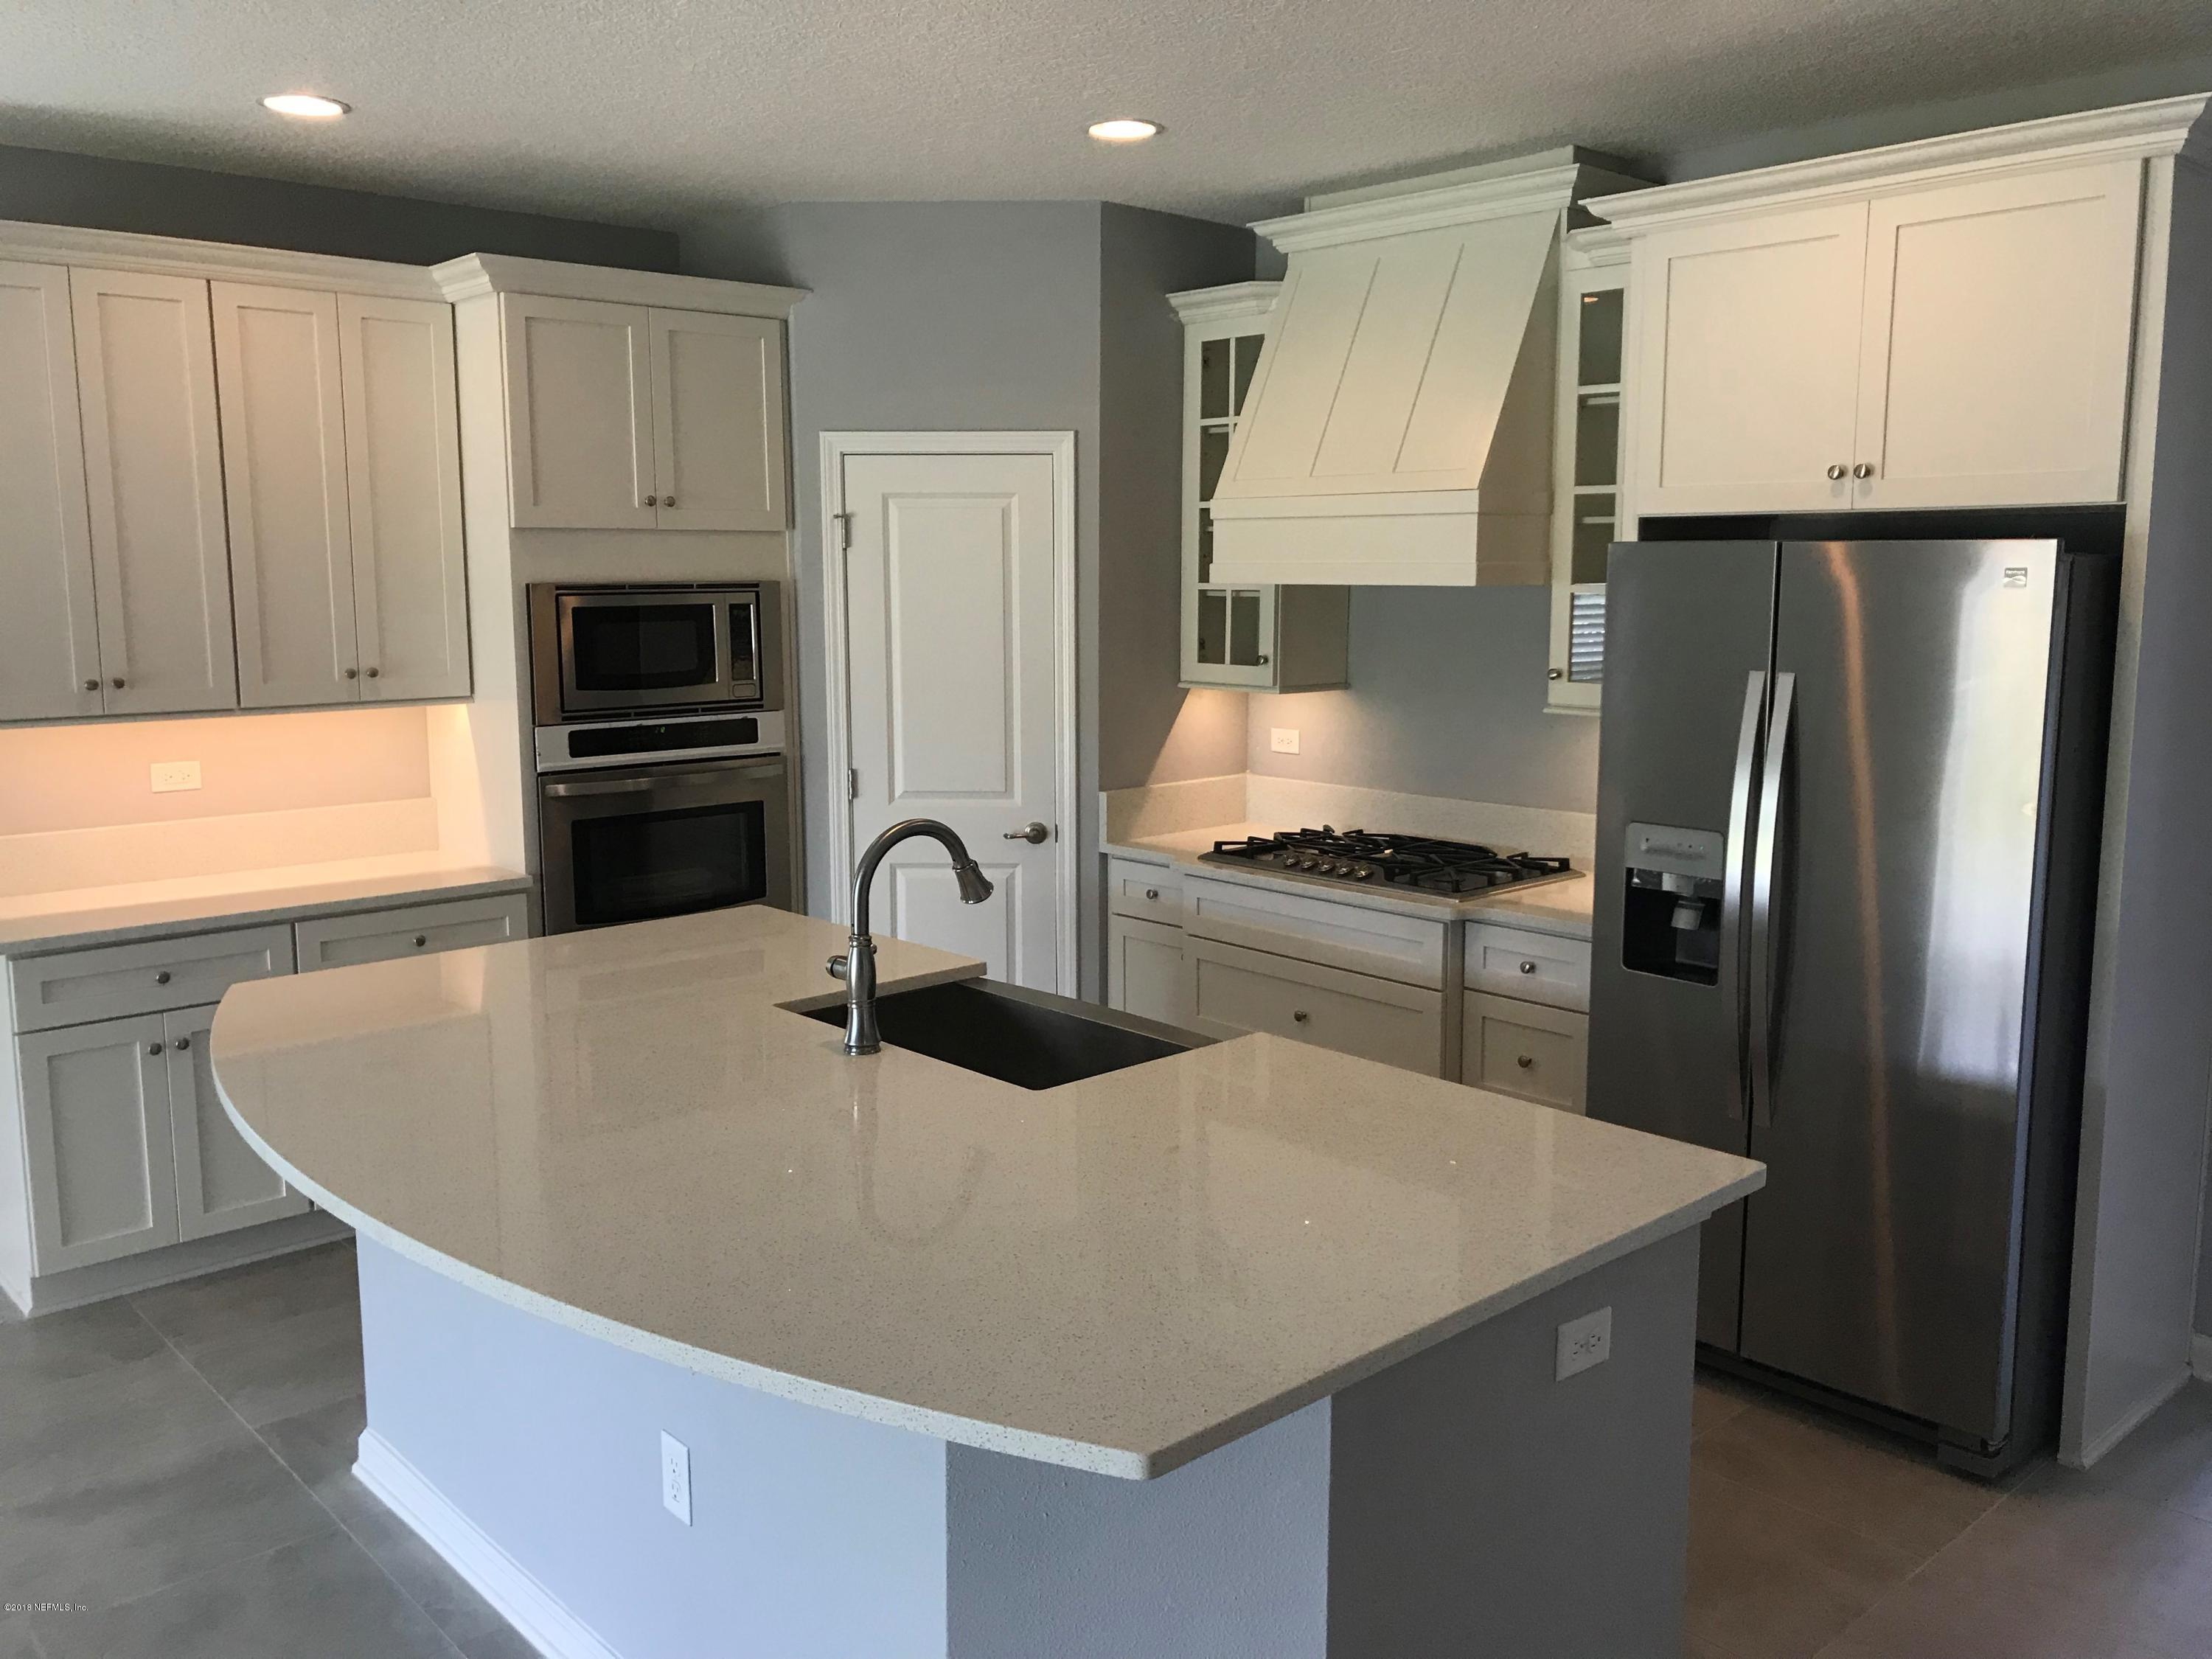 47 GREENVIEW, ST AUGUSTINE, FLORIDA 32092, 3 Bedrooms Bedrooms, ,2 BathroomsBathrooms,Residential - single family,For sale,GREENVIEW,916242